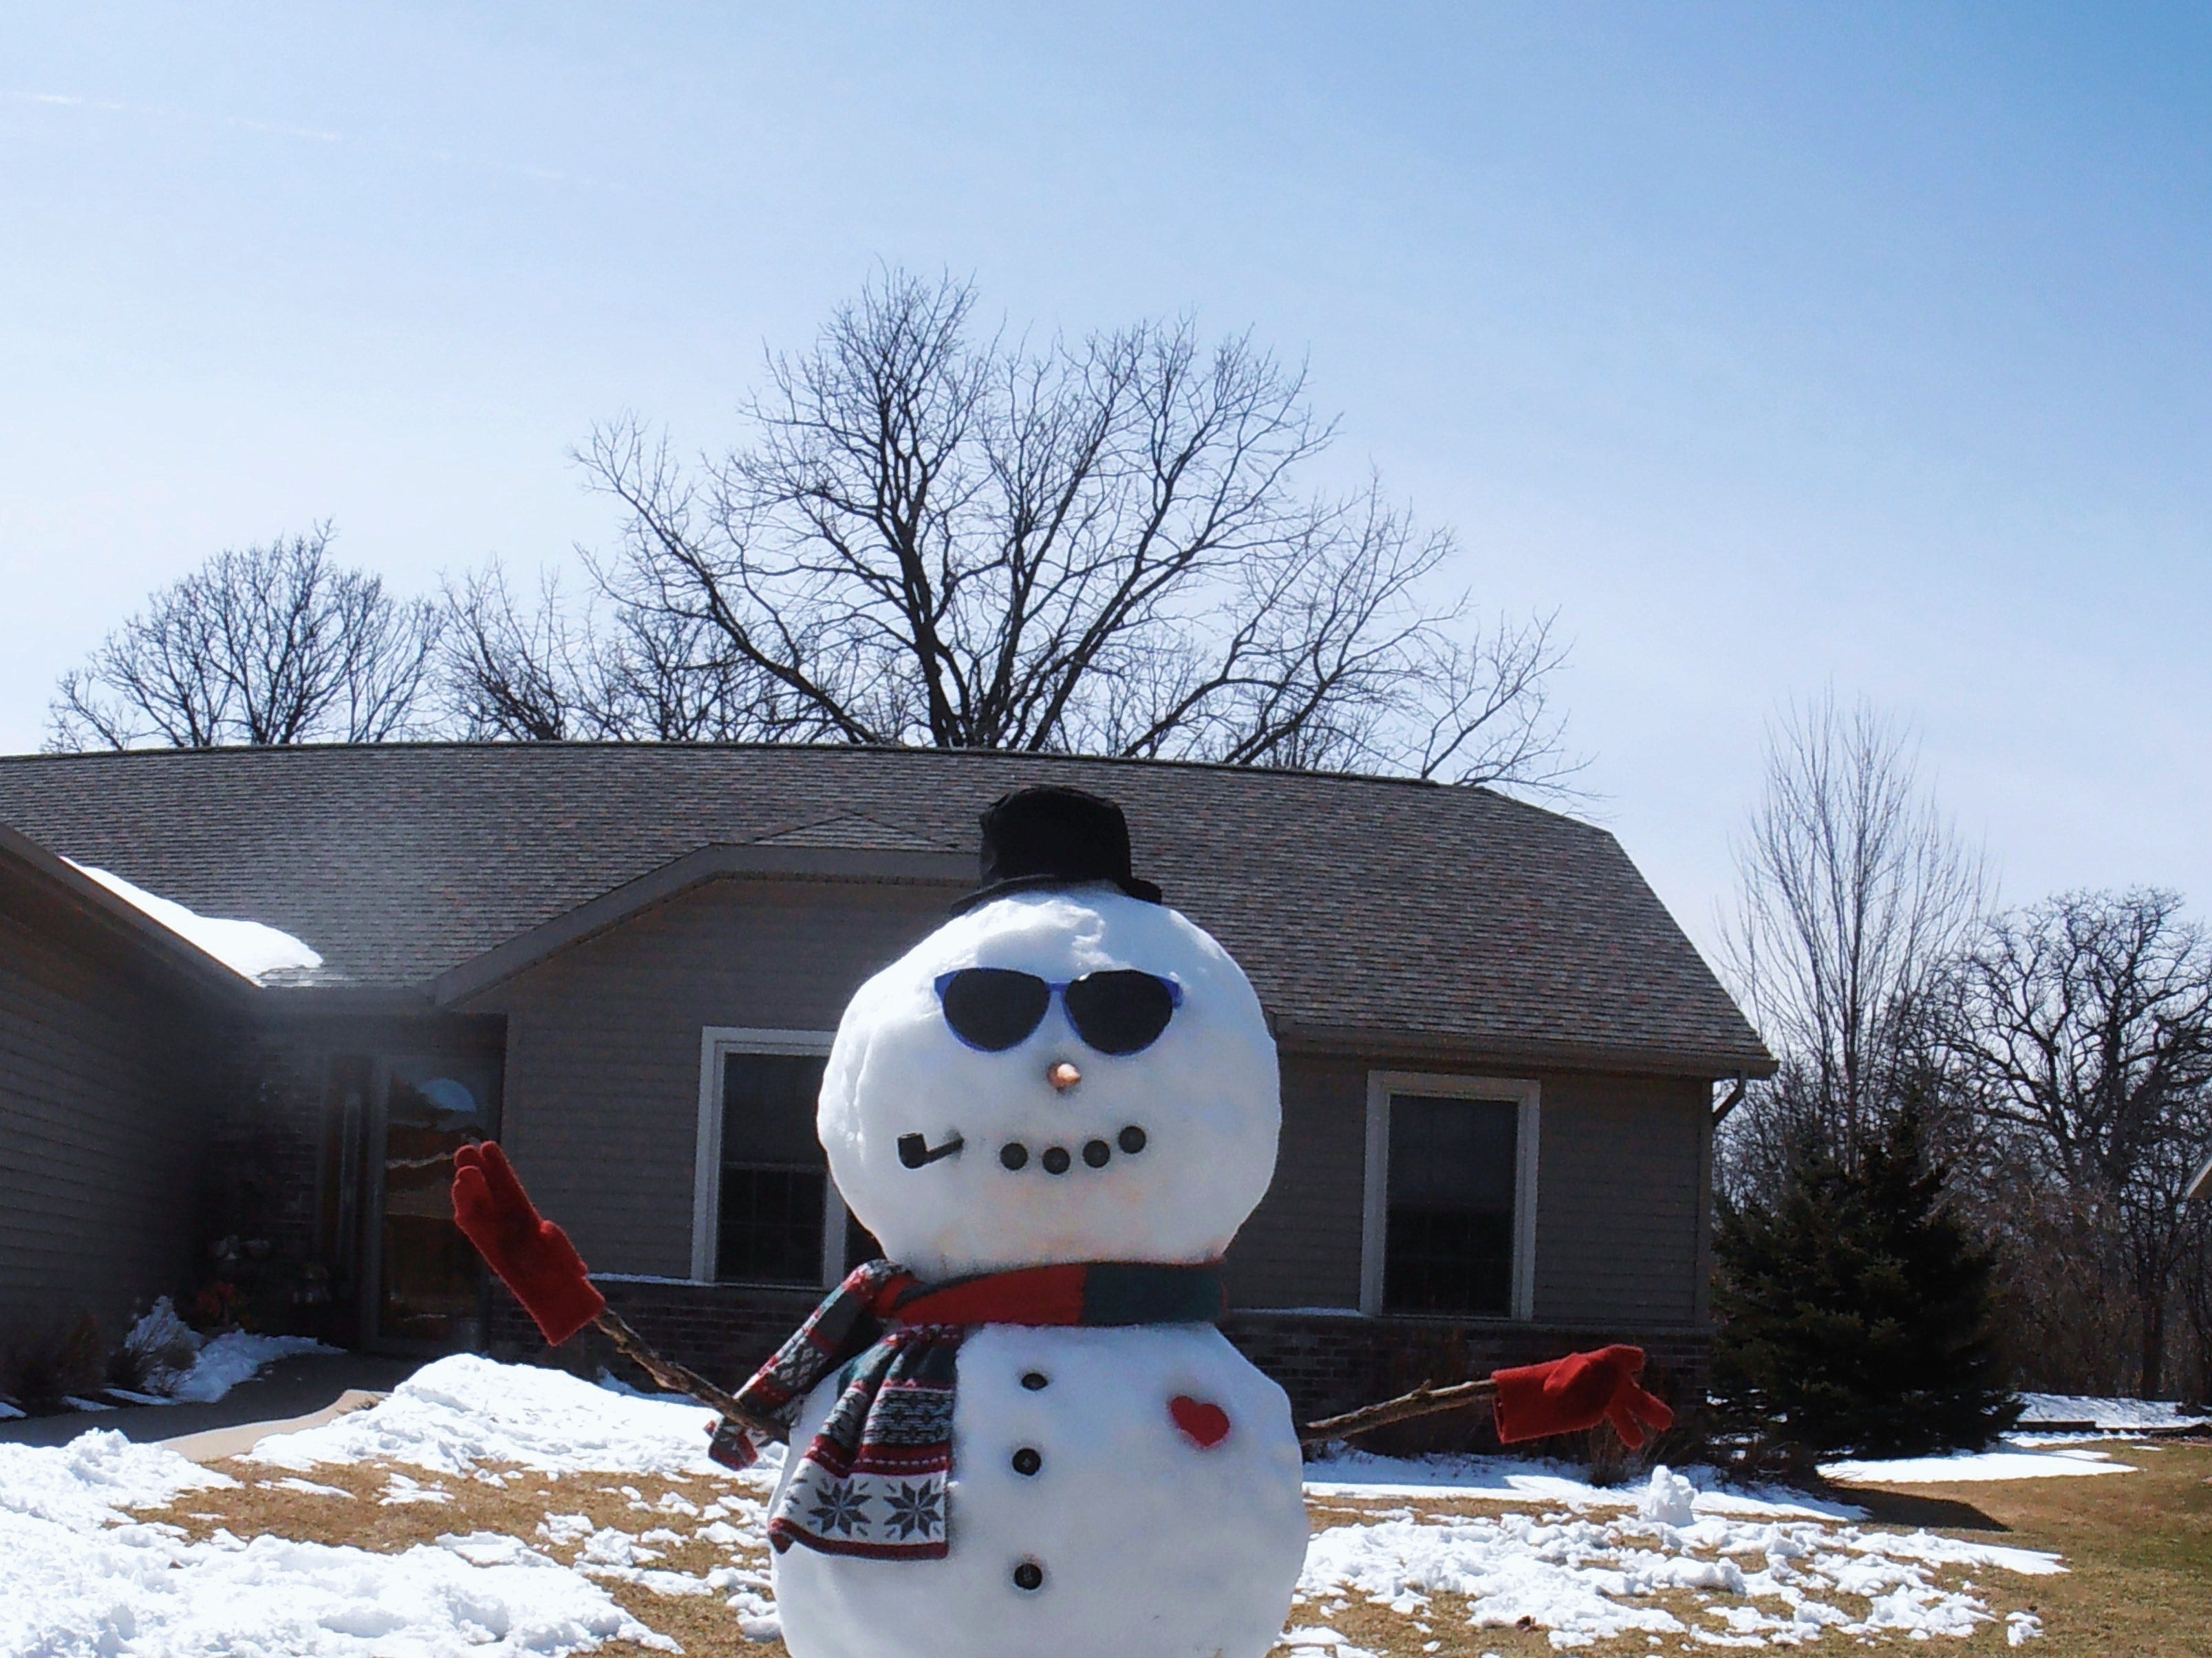 A snowman from a previous year decked out in sunglasses and mittens.